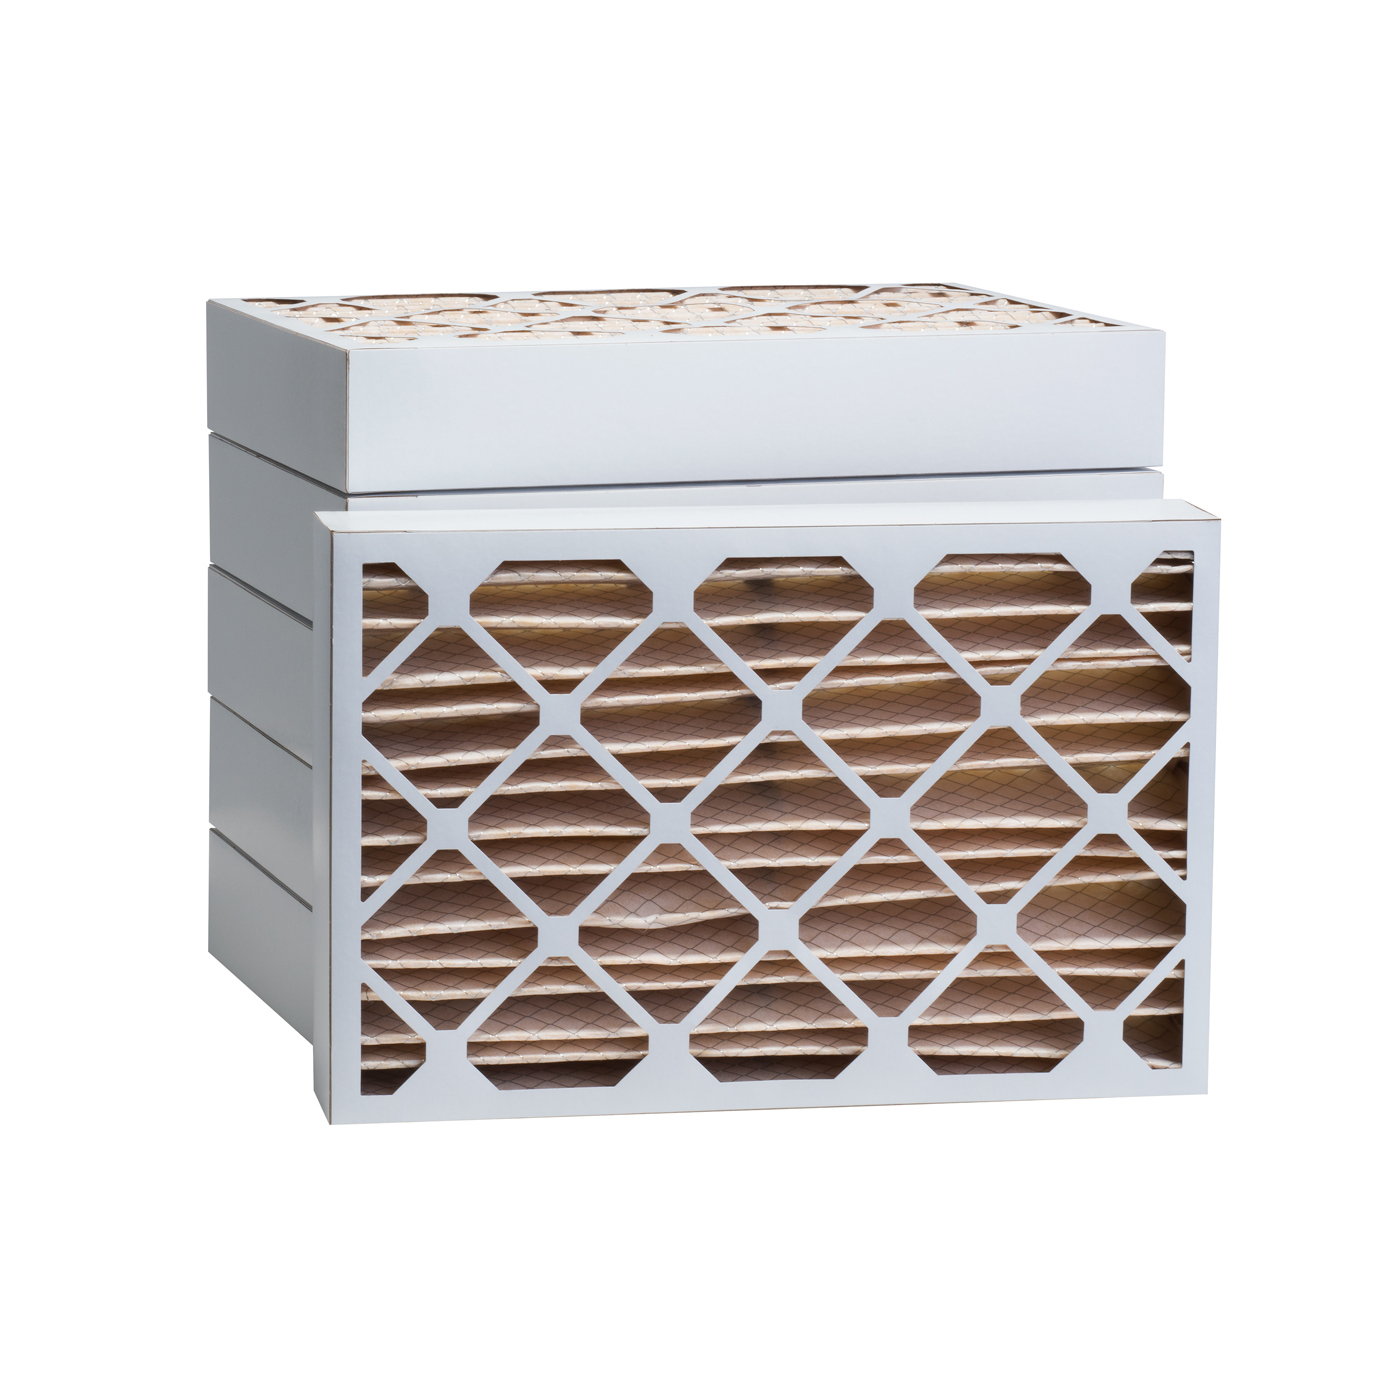 Tier1 1500 Air Filter - 16-3/8 x 21-1/2 x 4 (6-Pack) TIER1_P15S_6416F21H_6_PACK